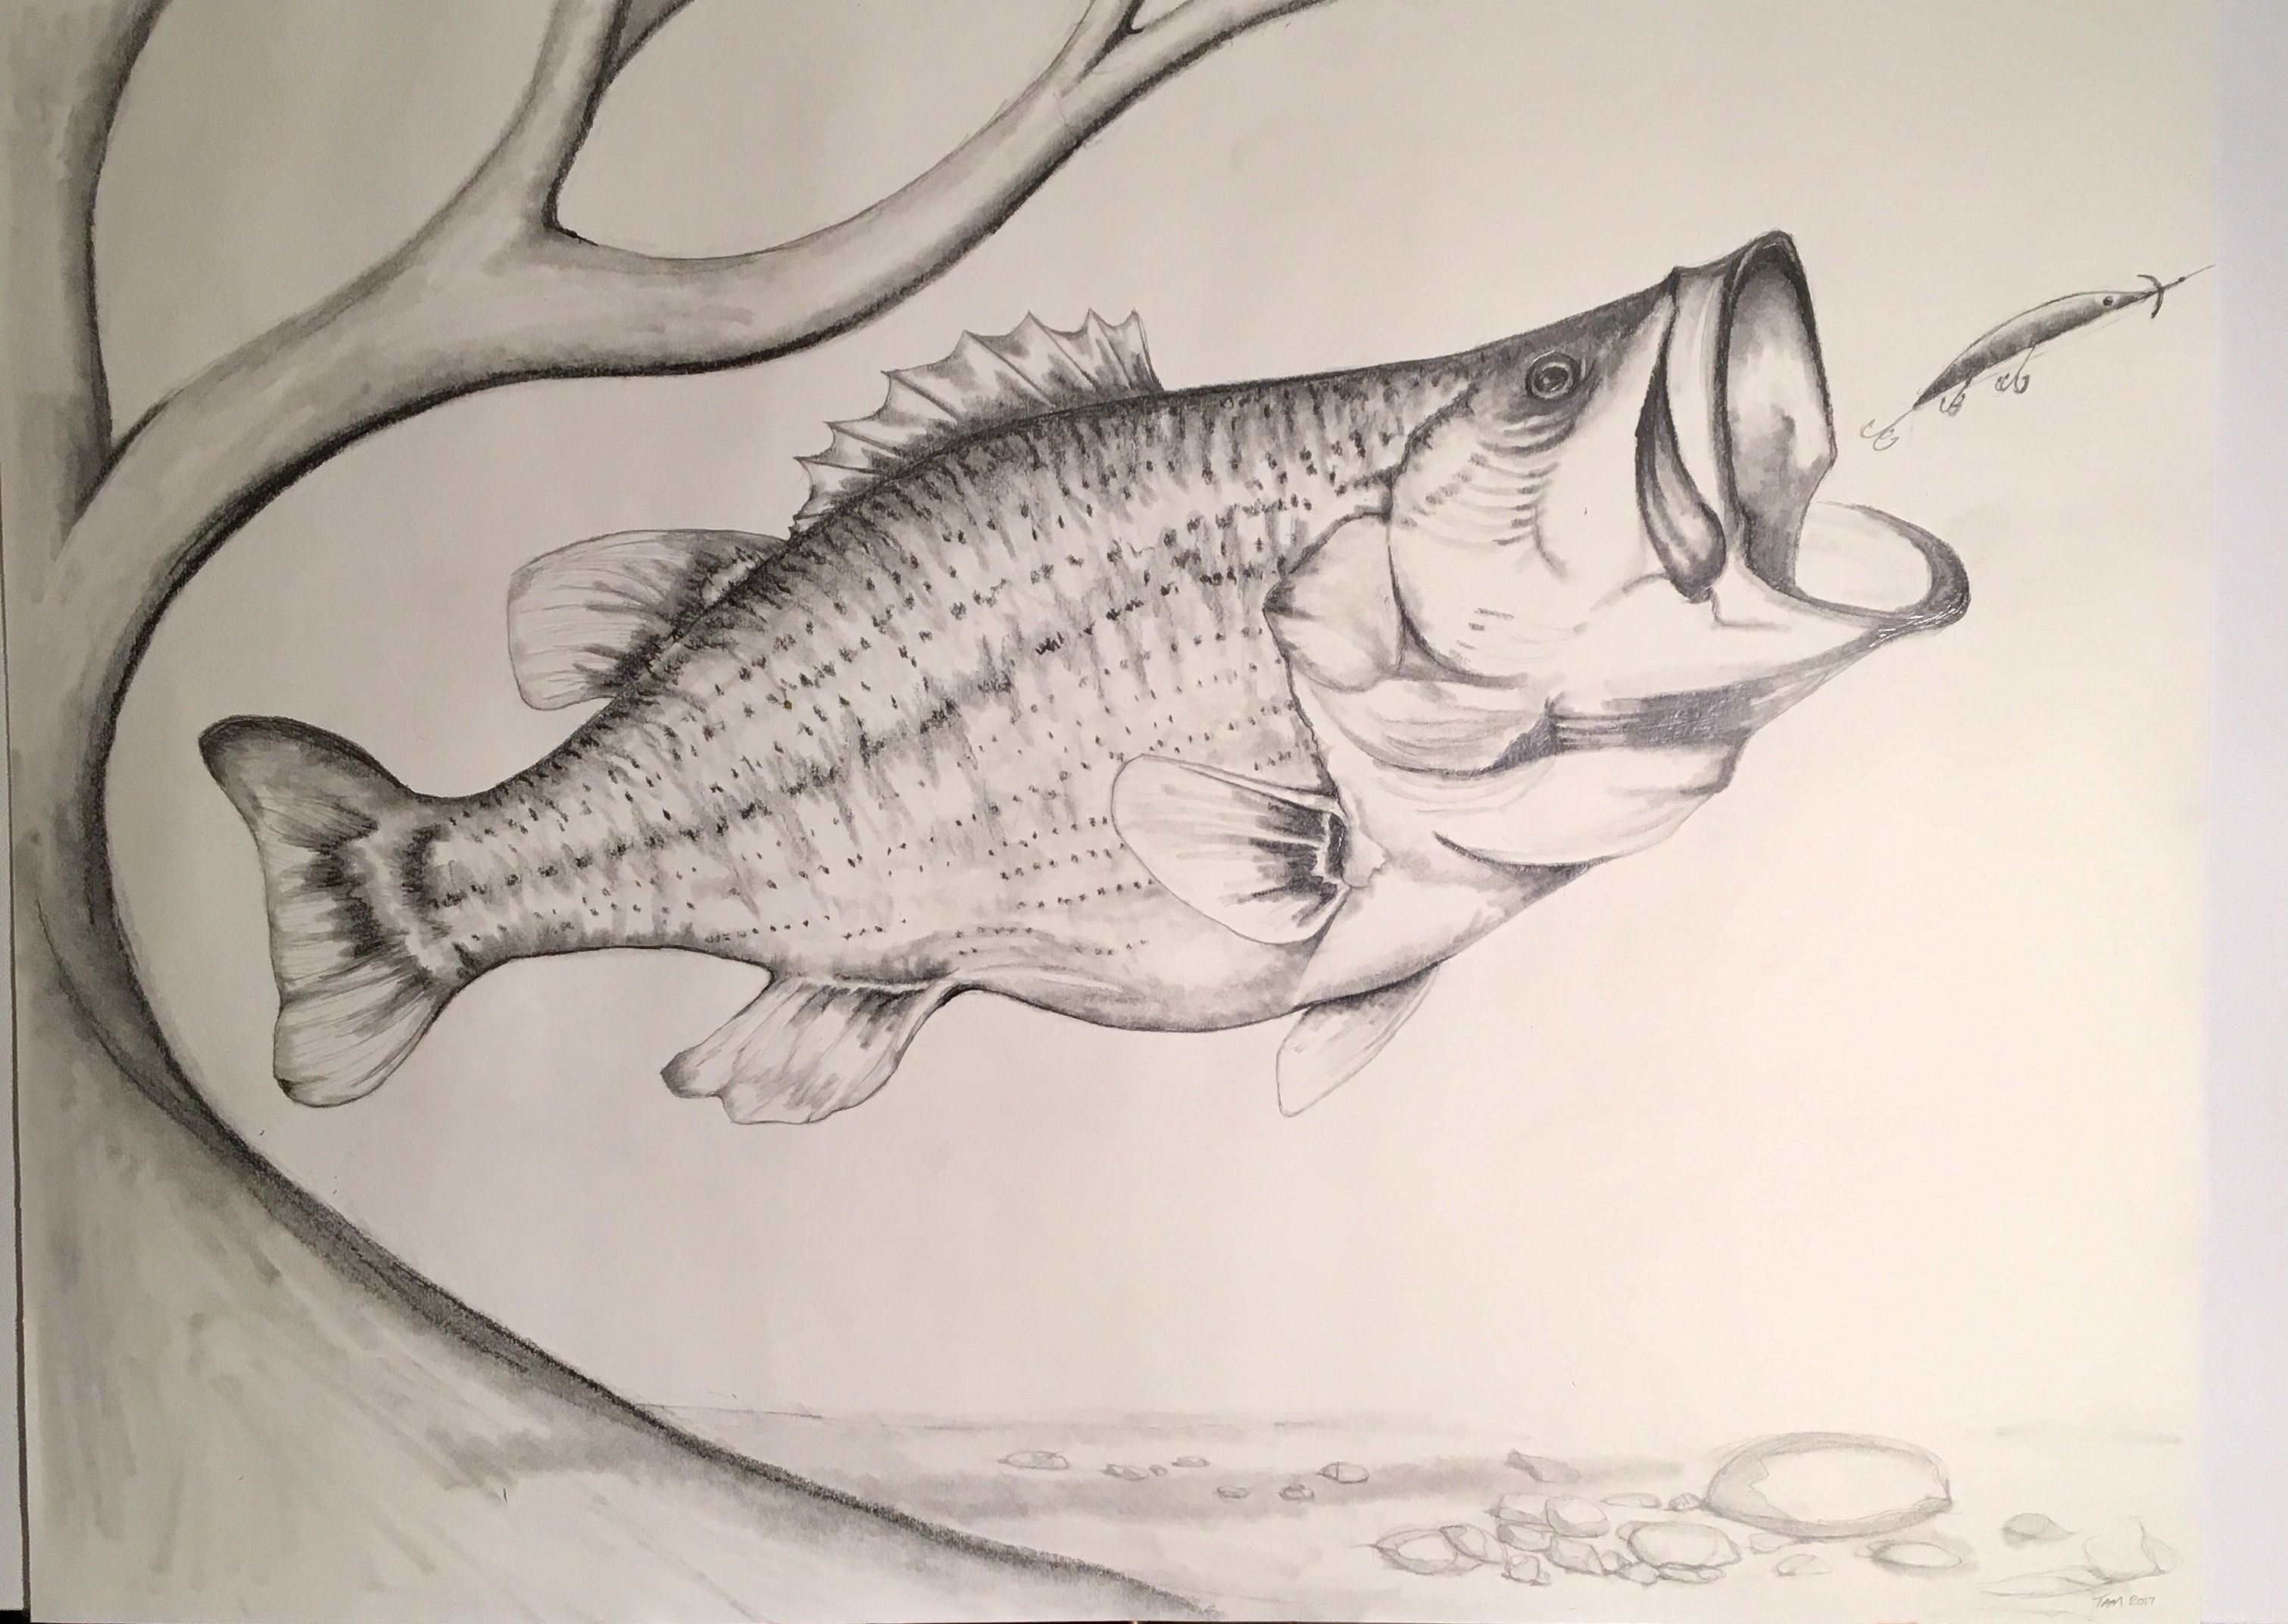 Largemouth Bass Spots A Potential Meal Pencil Sketch Drawing Fish Art Fish Drawing Fish Sketch Bass Art Www Etsy Com Fish Sketch Fish Drawings Drawings